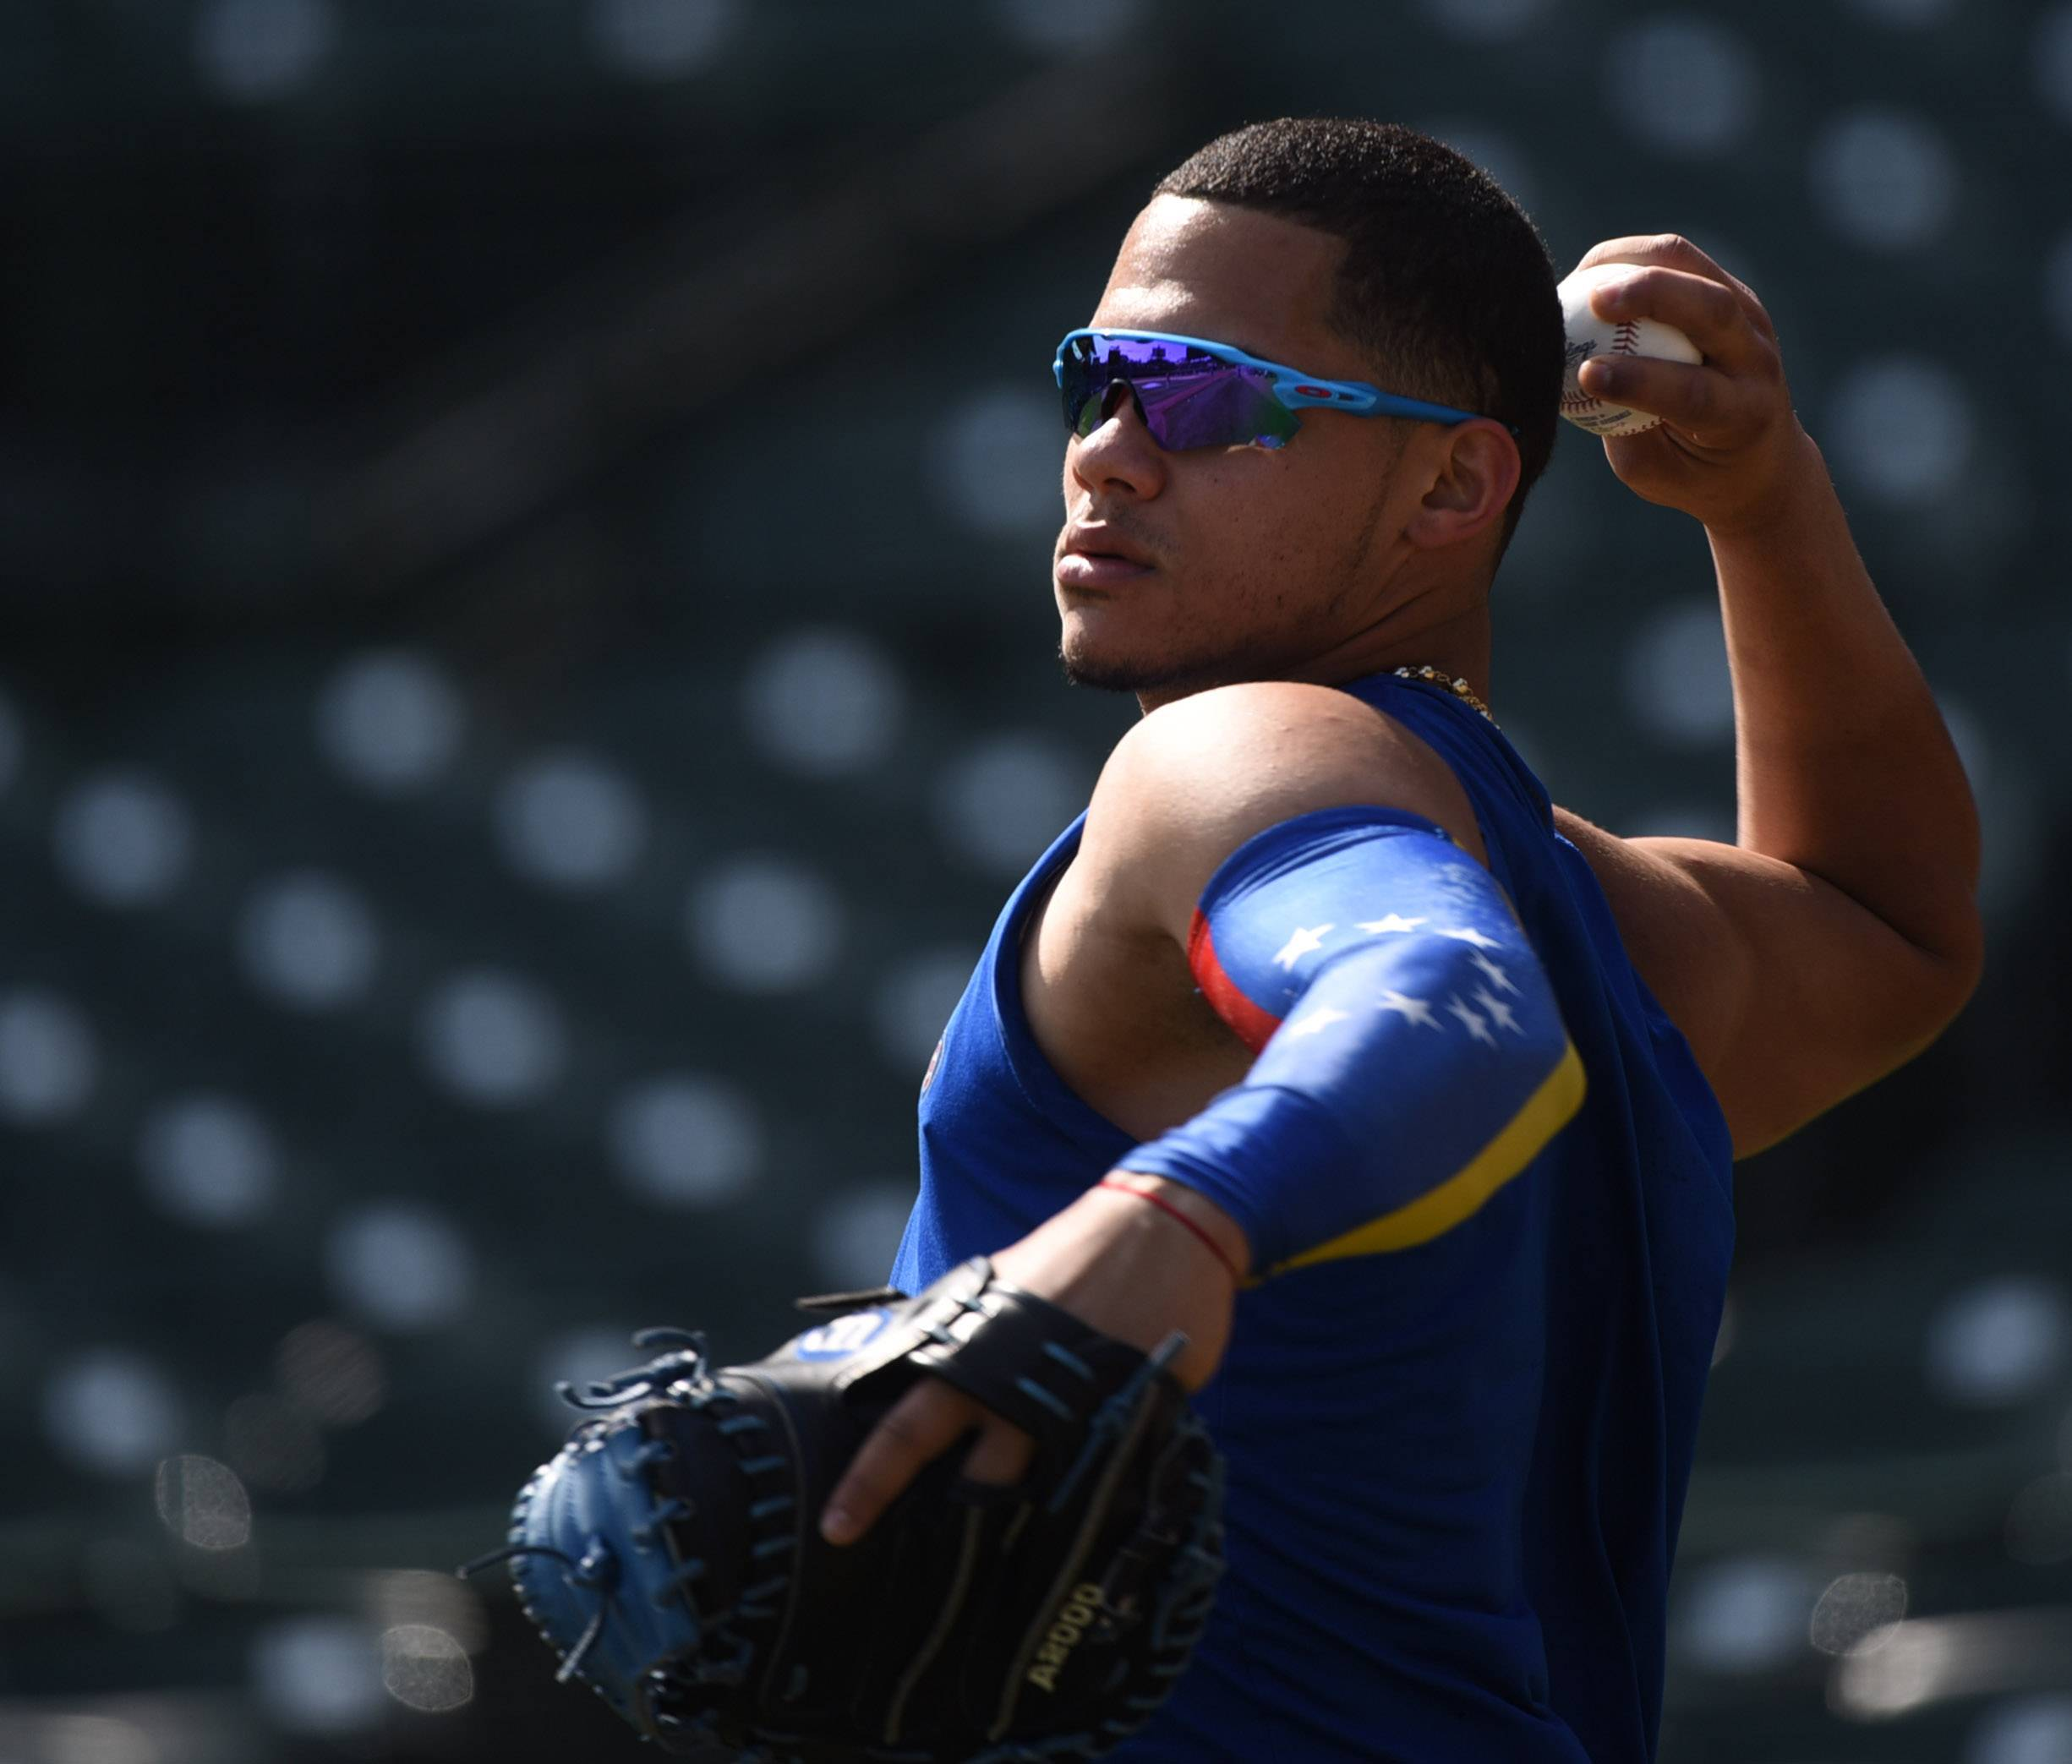 Joe Lewnard/jlewnard@dailyherald.com Chicago Cubs catcher Willson Contreras, who has been on the disabled list since August 11 with a pulled hamstring, works out at Wrigley Field in Chicago Friday morning.